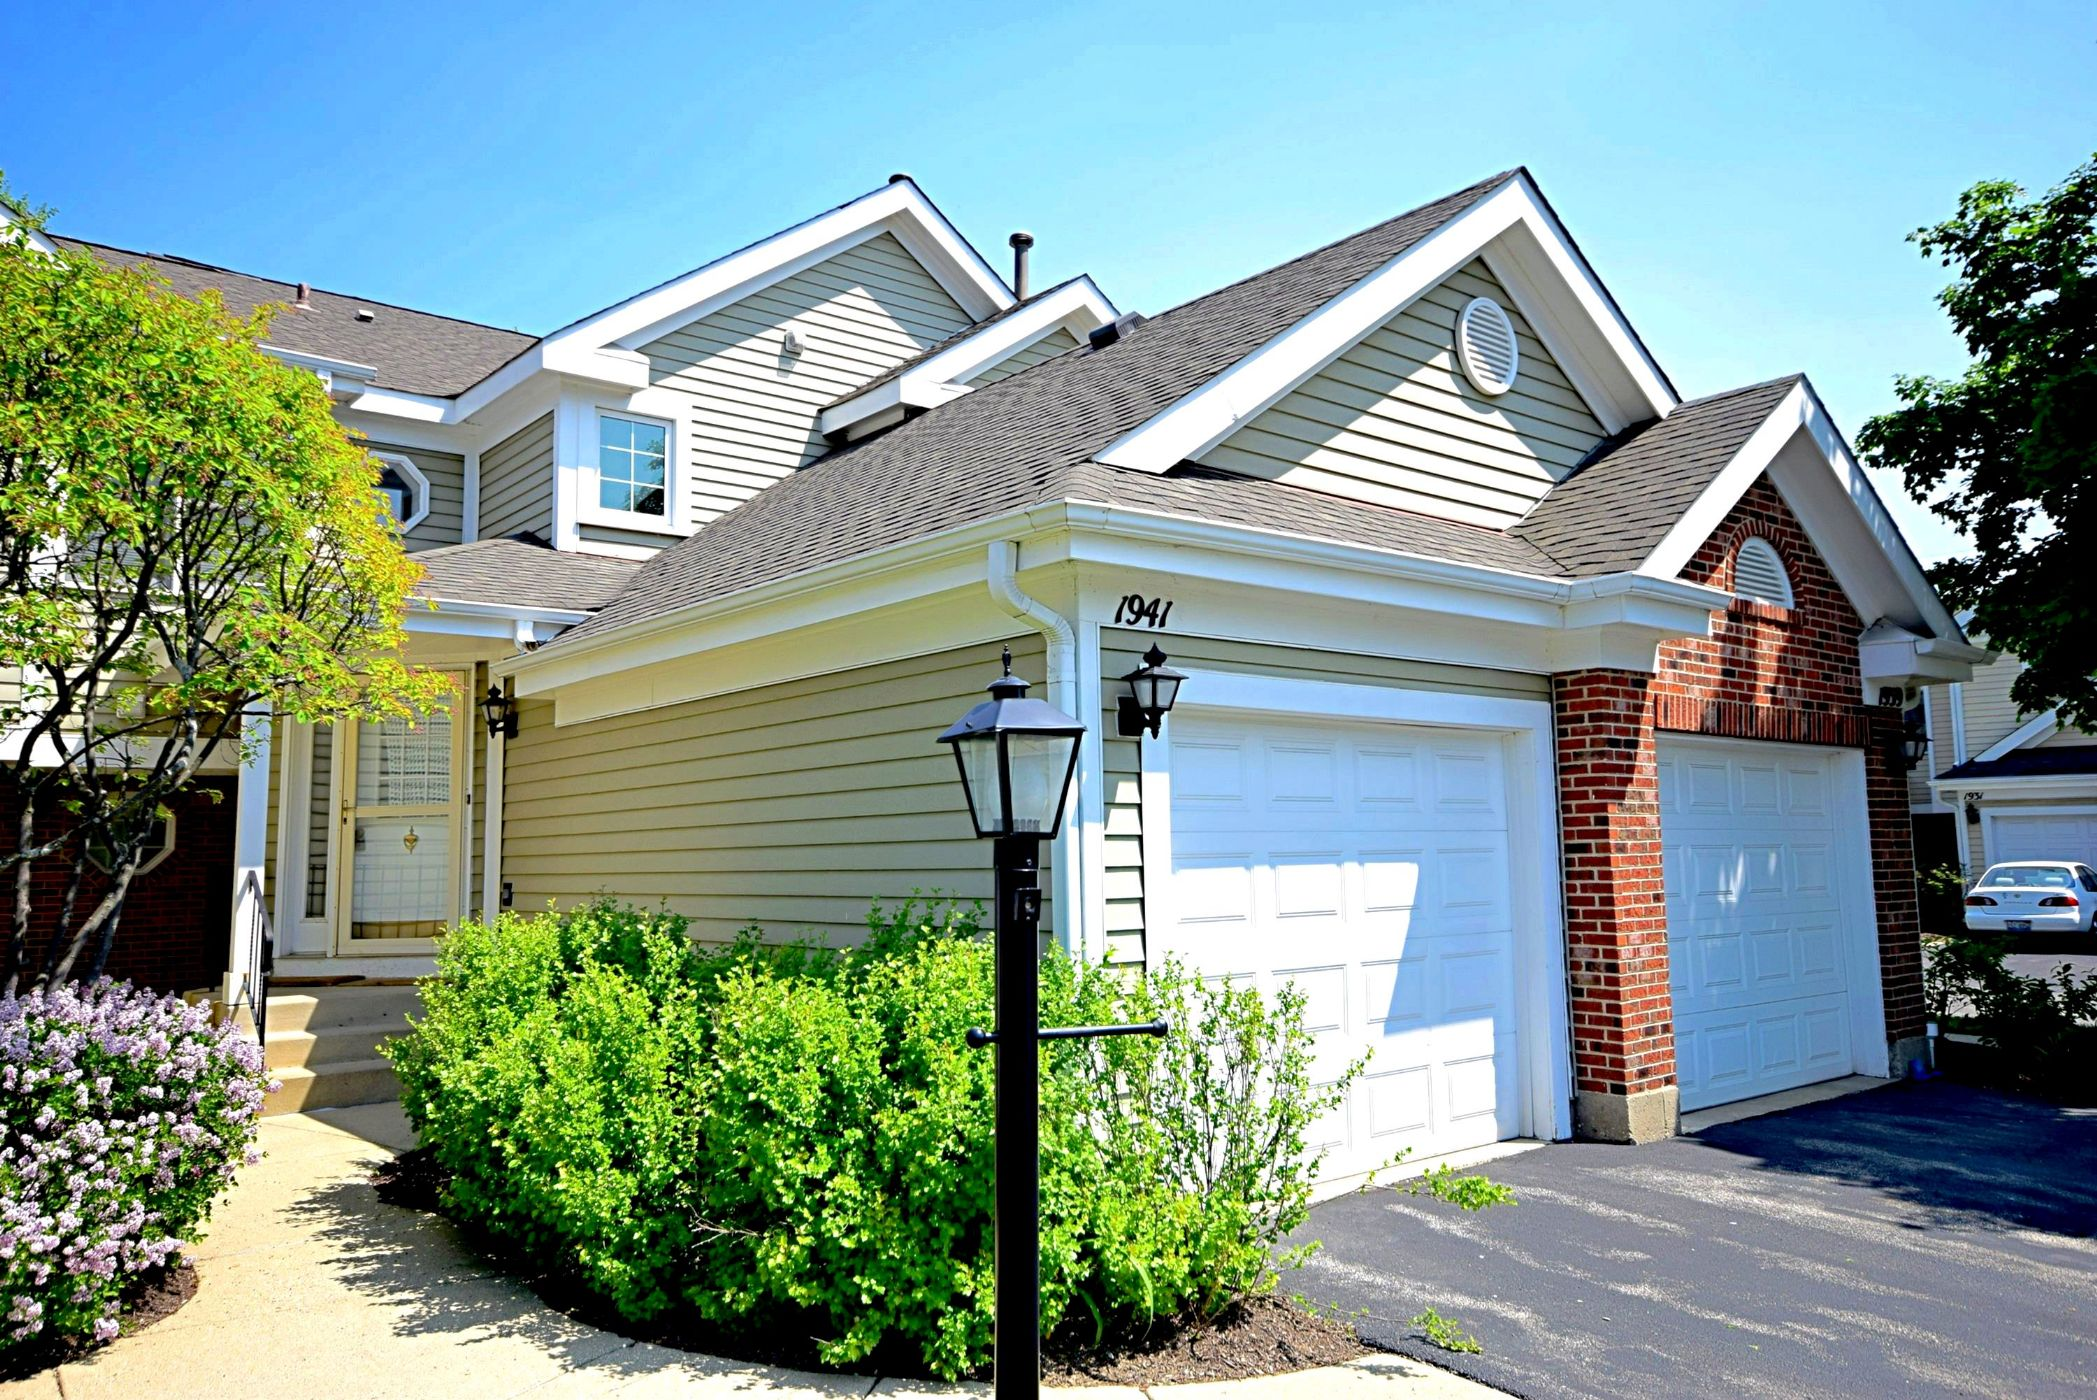 Arlington Heights Home, IL Real Estate Listing